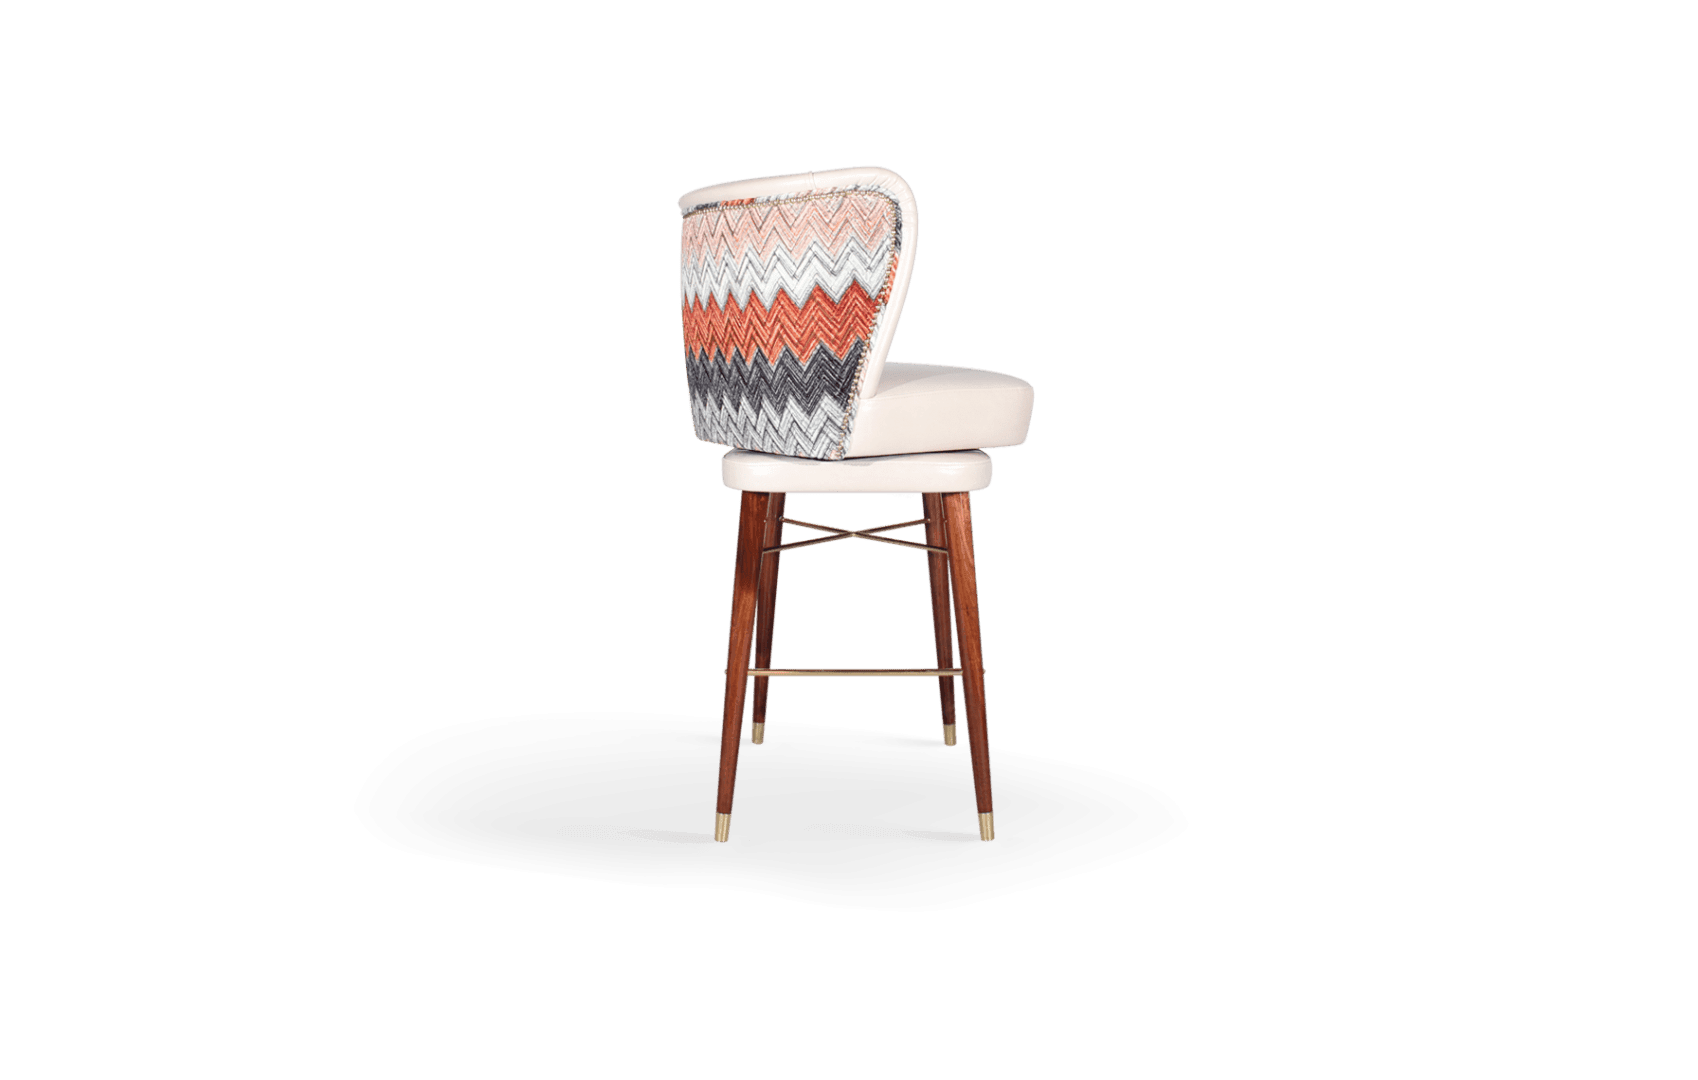 living-coral-modern-bar-chair-tren-design